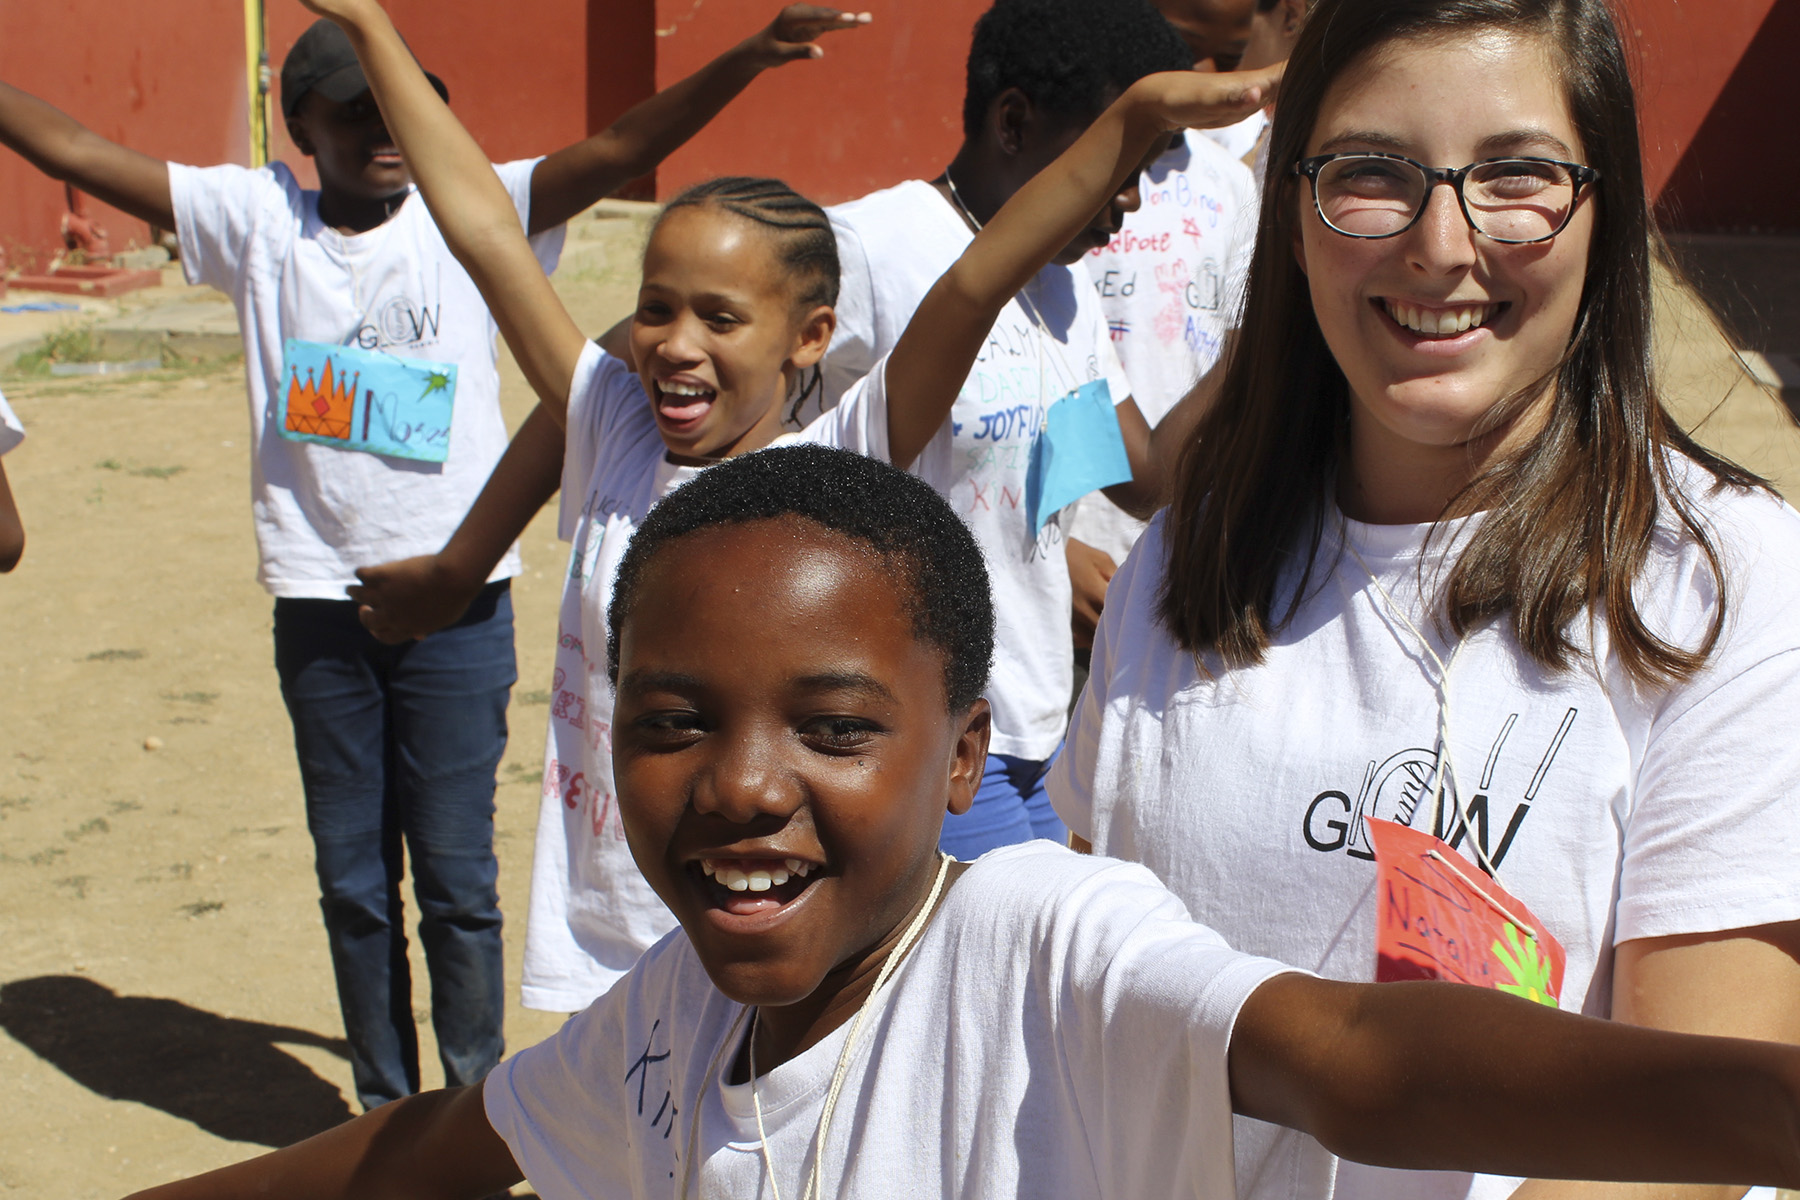 Natalie Booth '18 serves as a teacher at a primary school in Namibia. She is also part of the Peace Corps Namibia Media Committee.